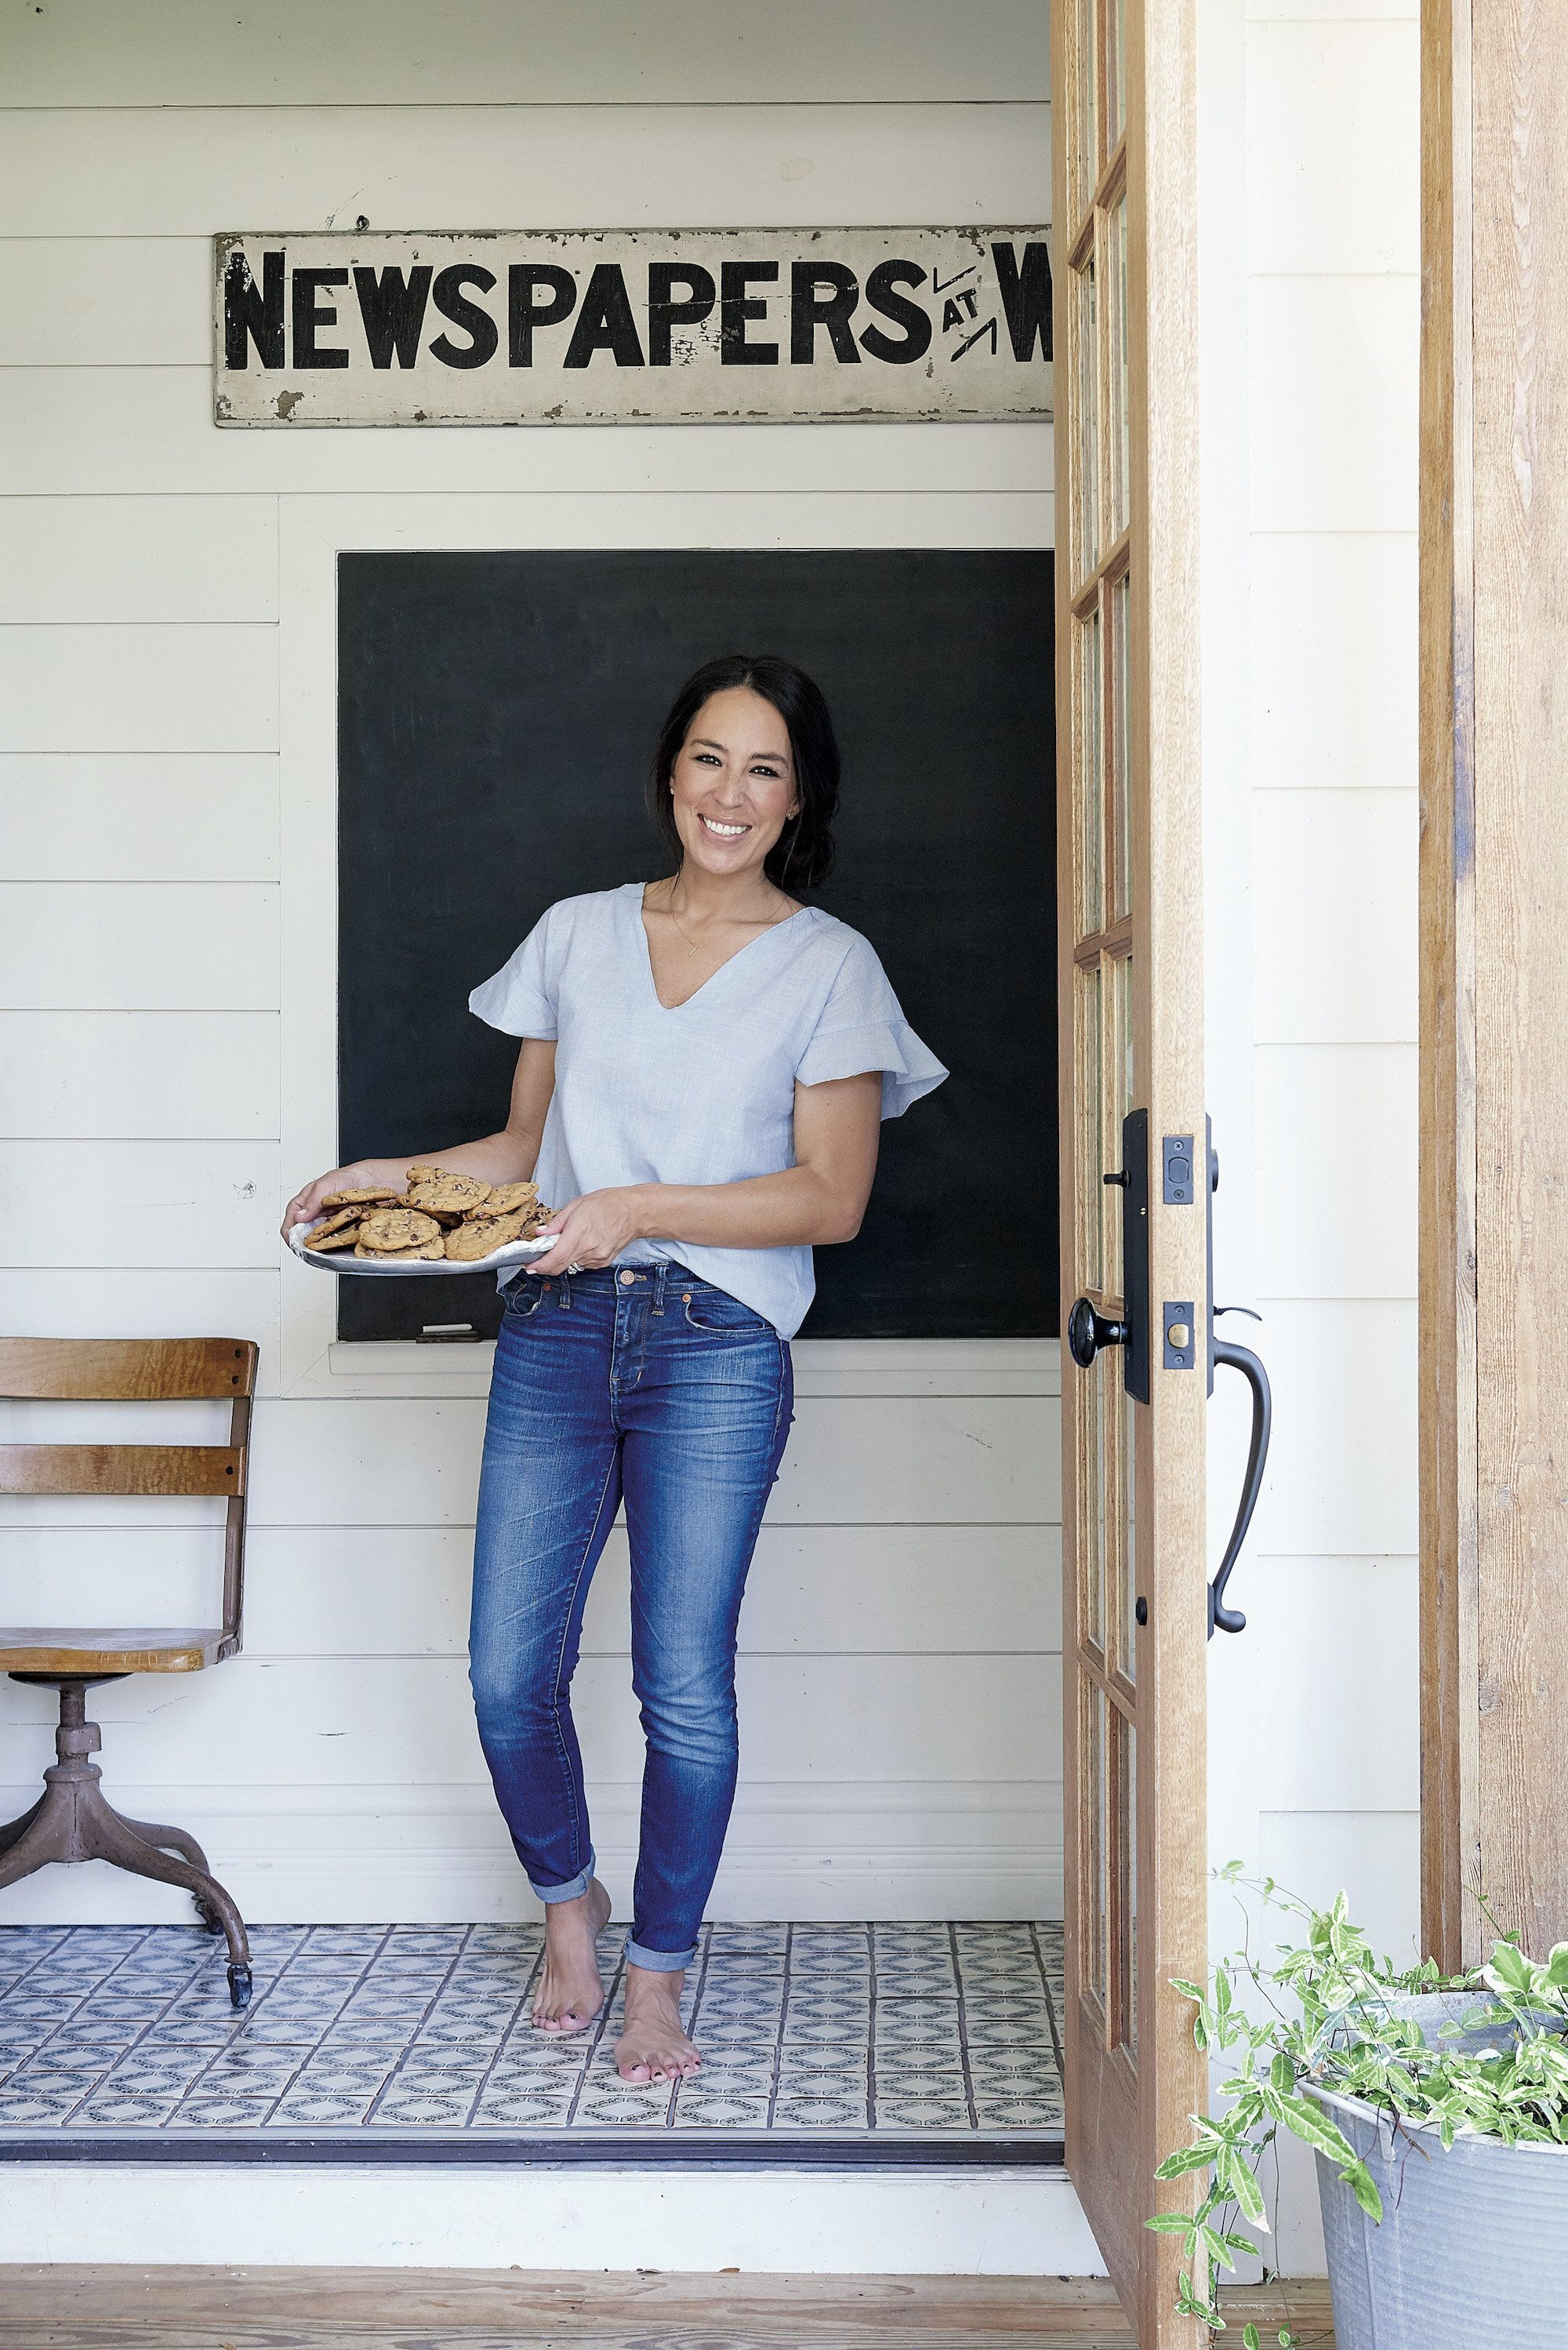 Joanna Gaines' recipefor chocolate chip cookies uses less butter than most.